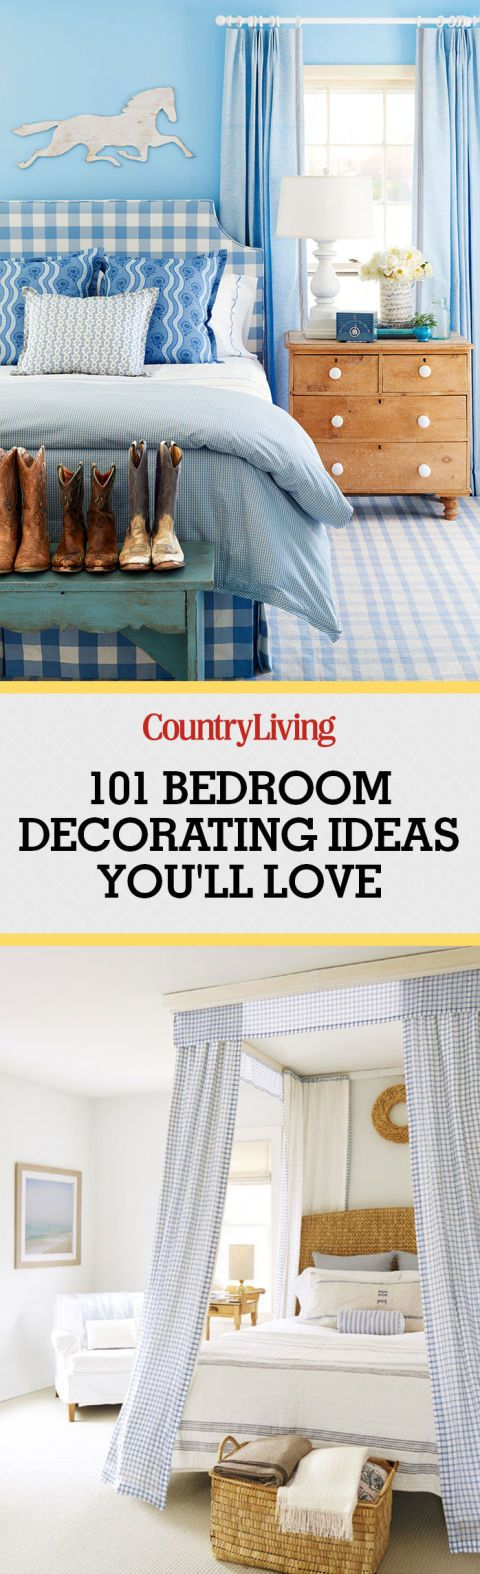 100 bedroom decorating ideas youll love - Master Bedroom Decorating Ideas Pinterest